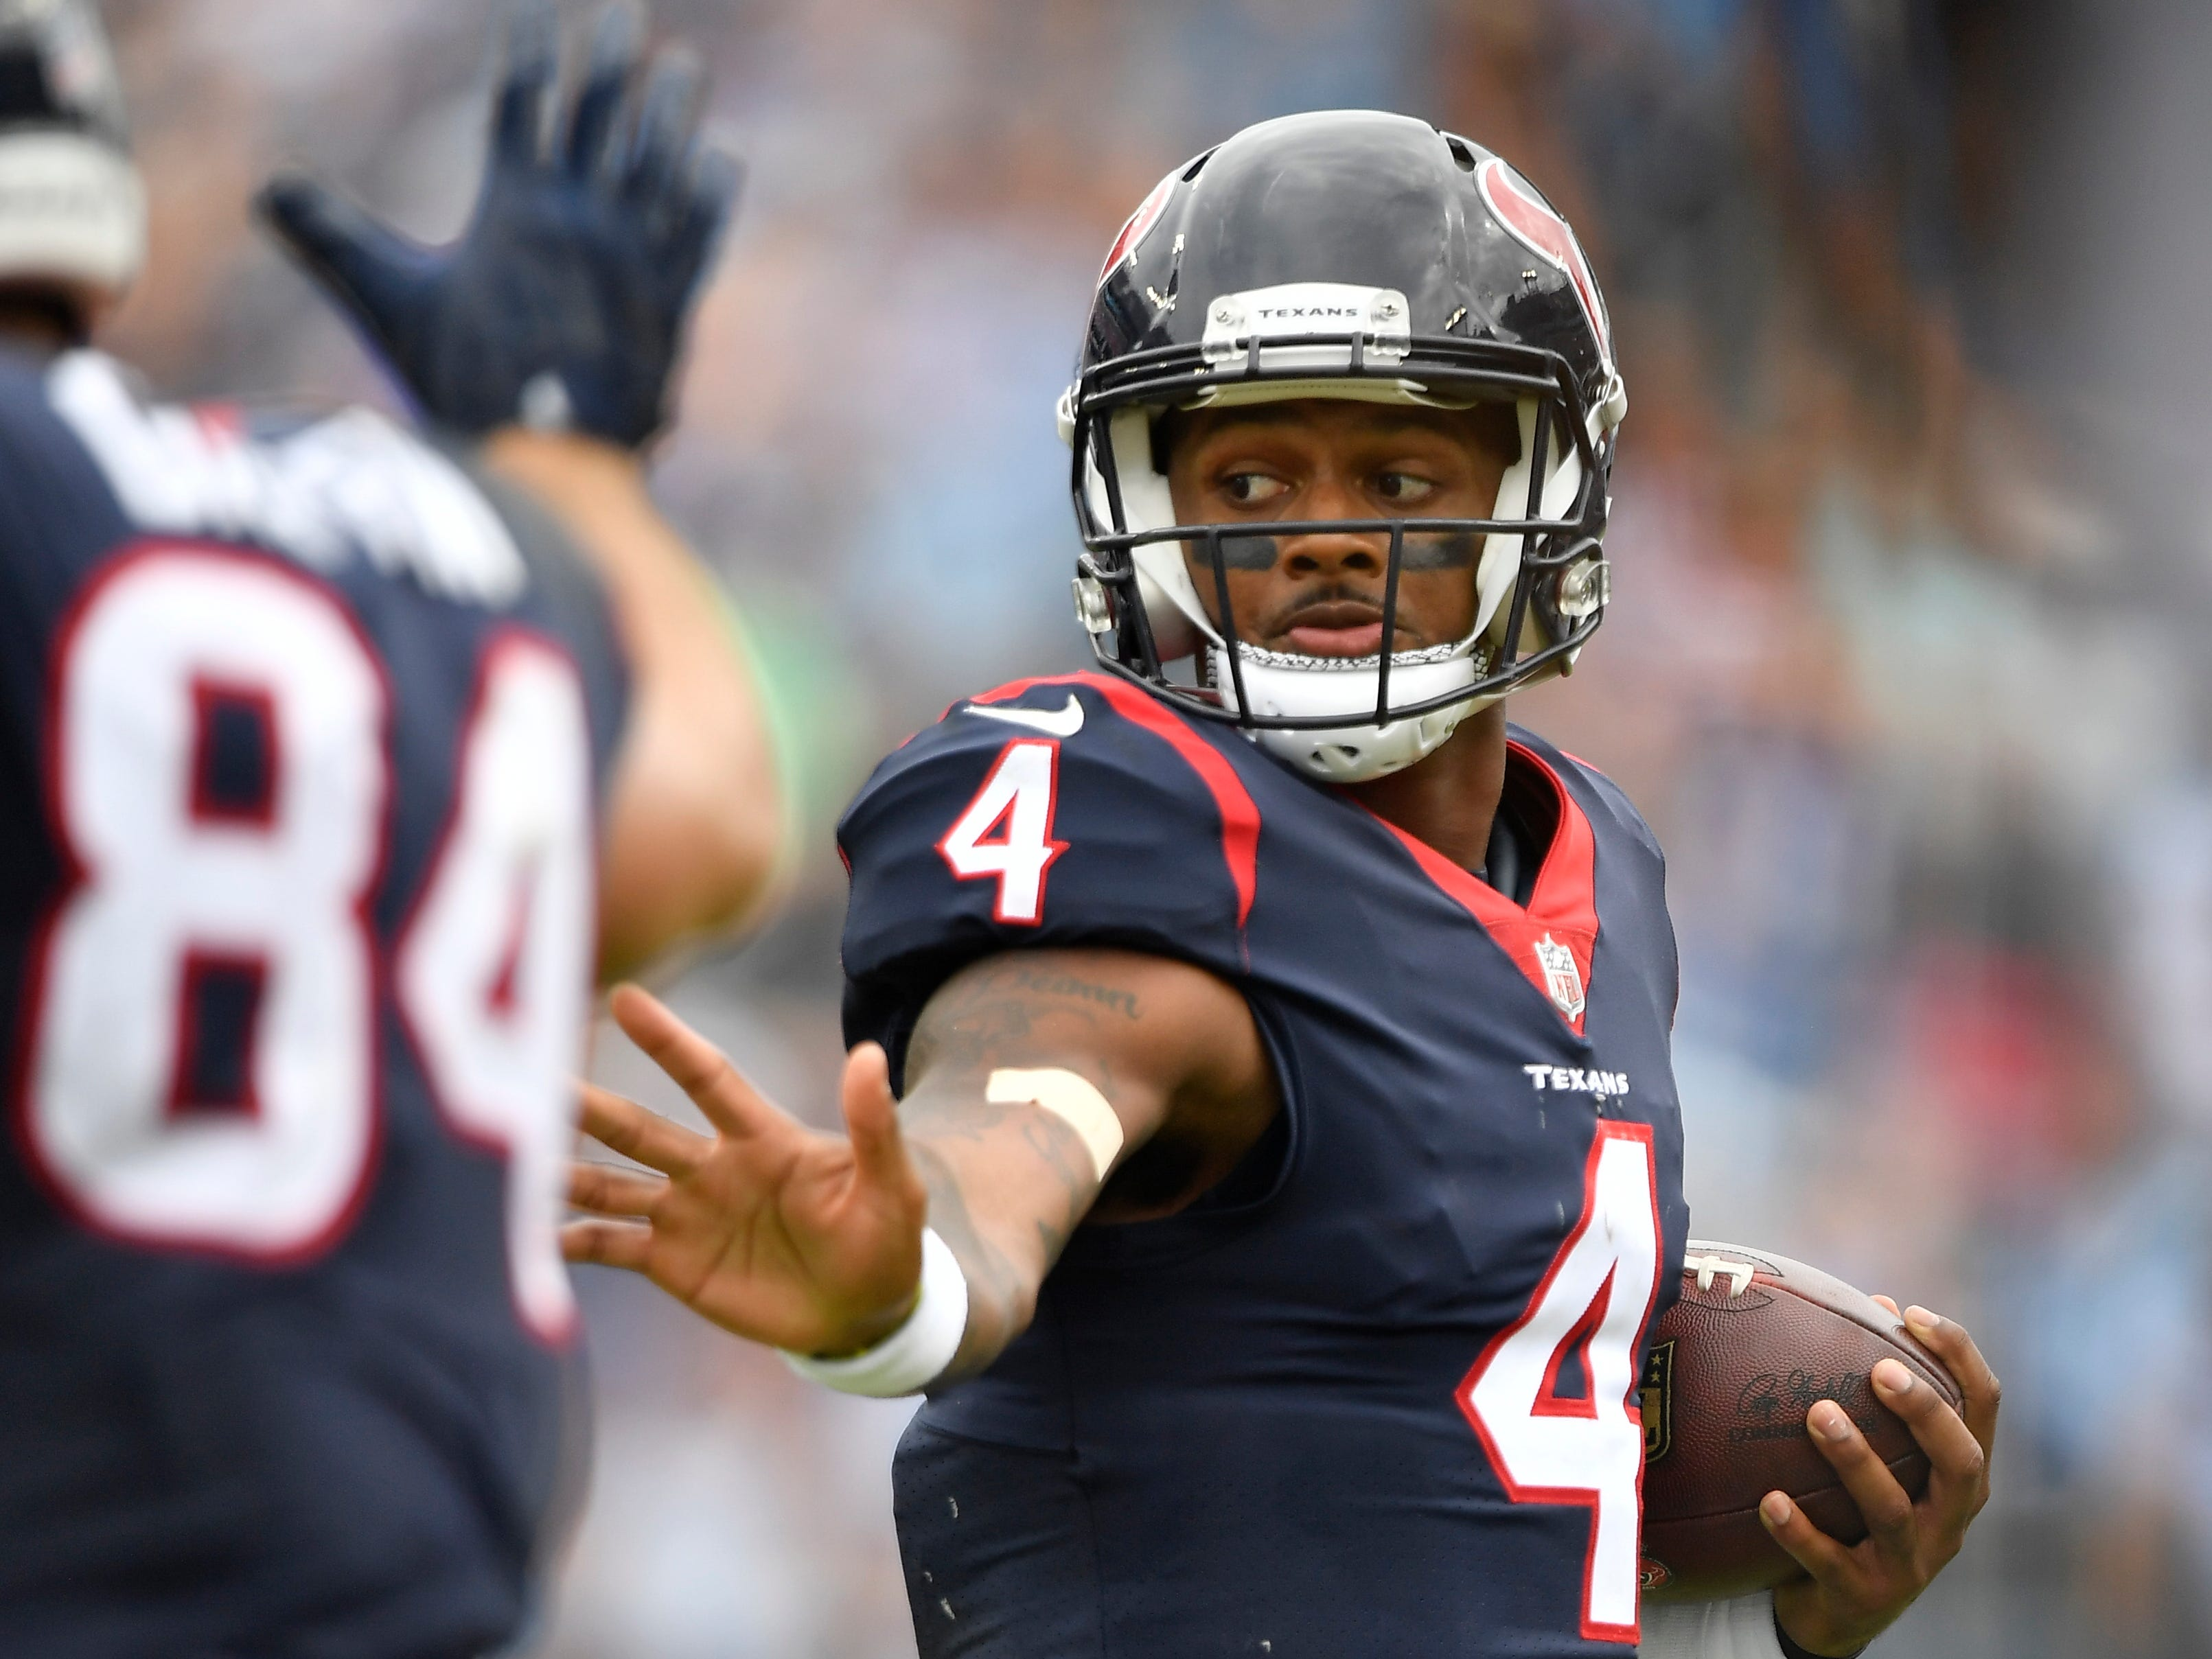 Texans quarterback Deshaun Watson (4) scrambles out of the pocket in the third quarter at Nissan Stadium Sunday, Sept. 16, 2018, in Nashville, Tenn.